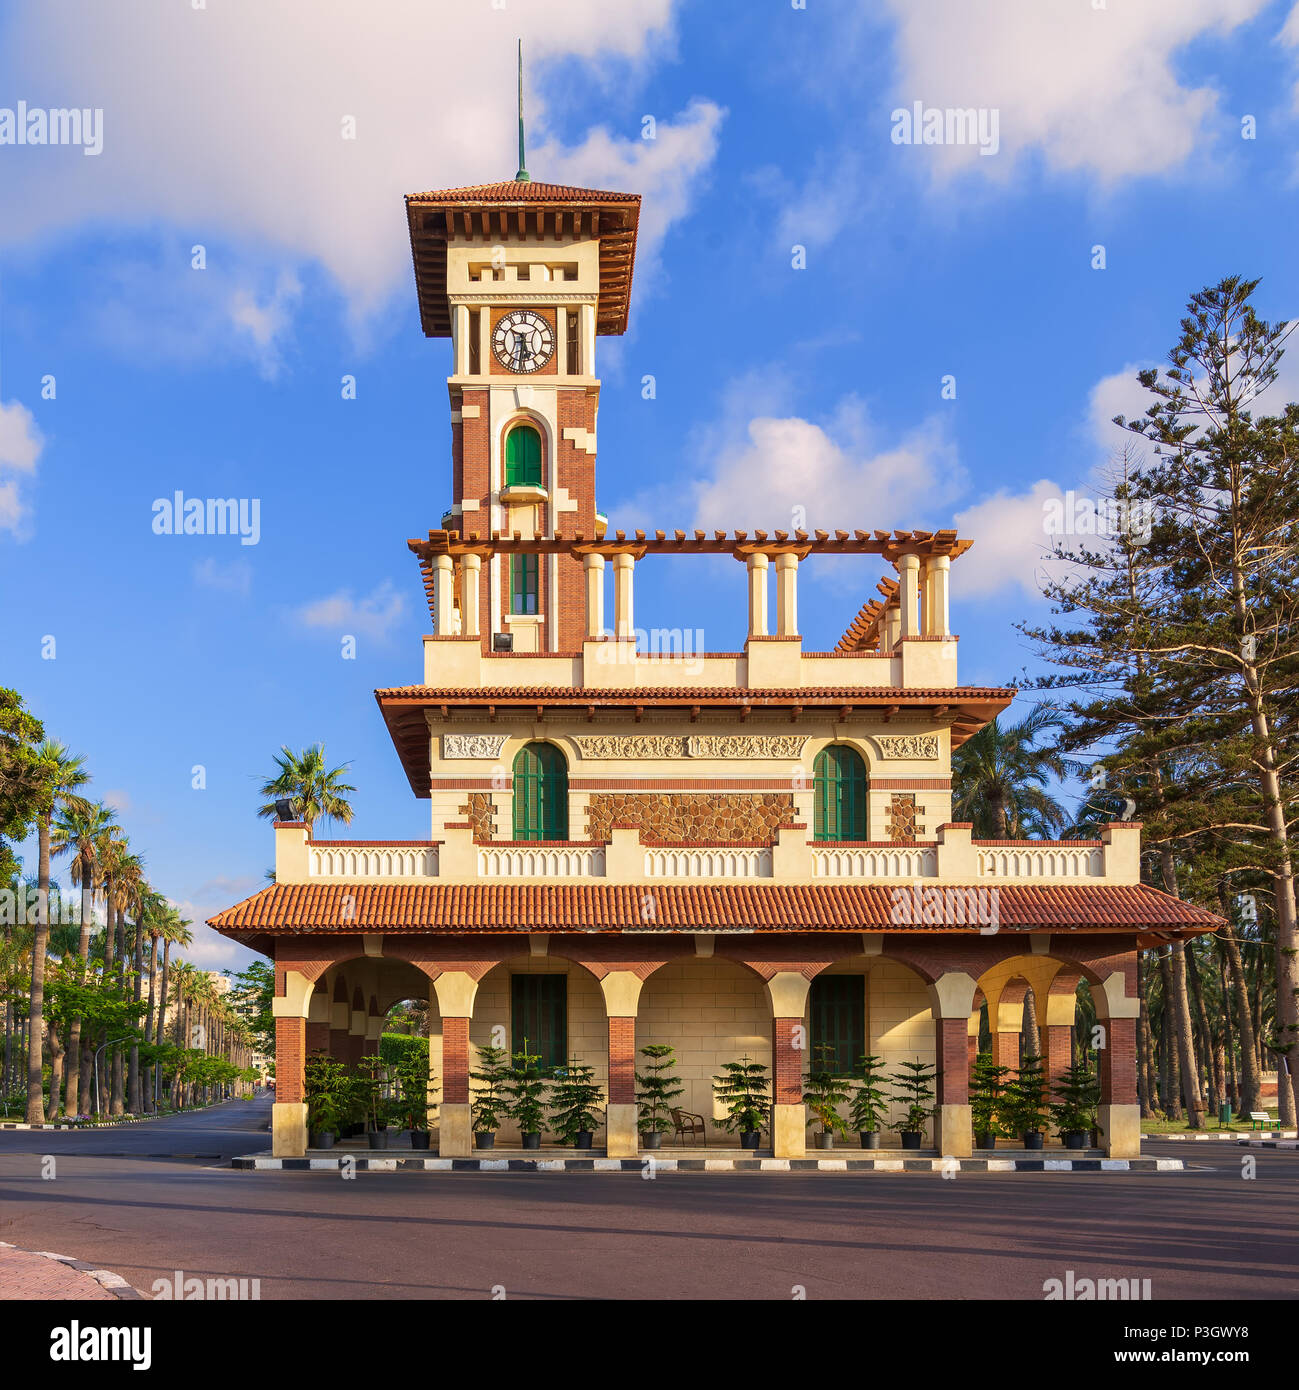 Facade of the clock tower in Montaza public park with decorated stone wall, green wooden window shutters, and red tile canopies after sunrise, Alexand - Stock Image